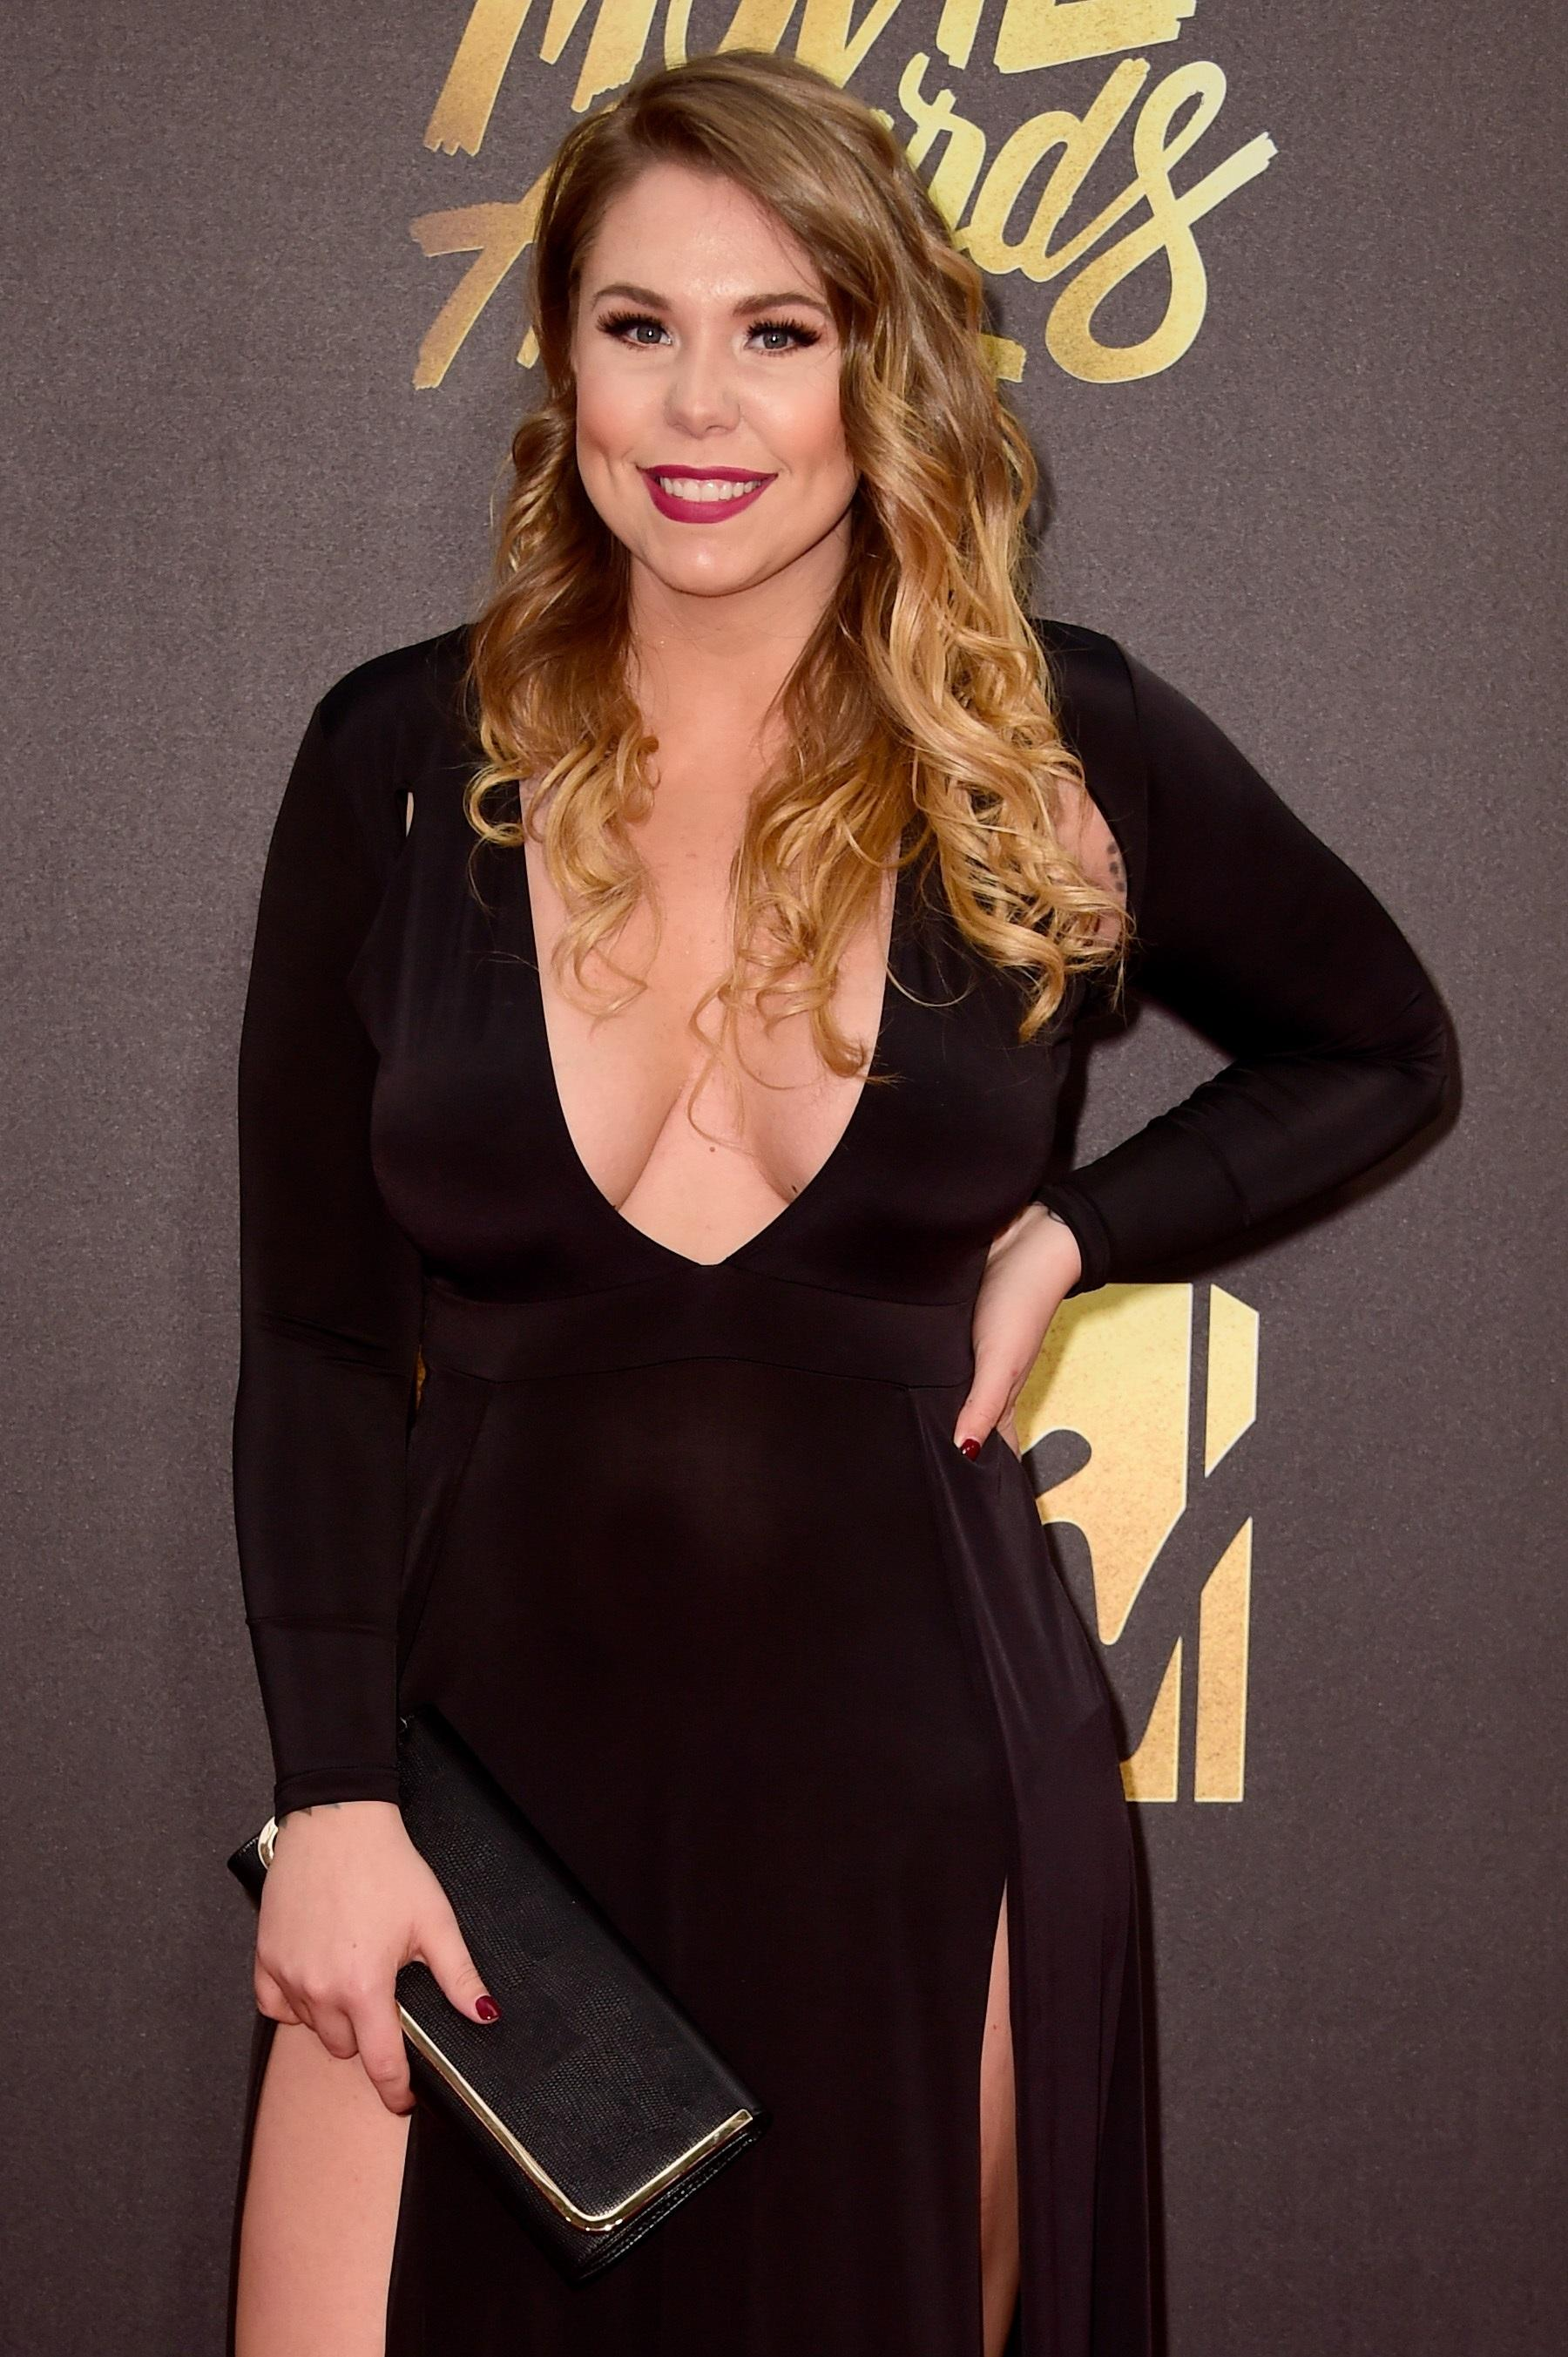 Kailyn Lowry post-surgery body